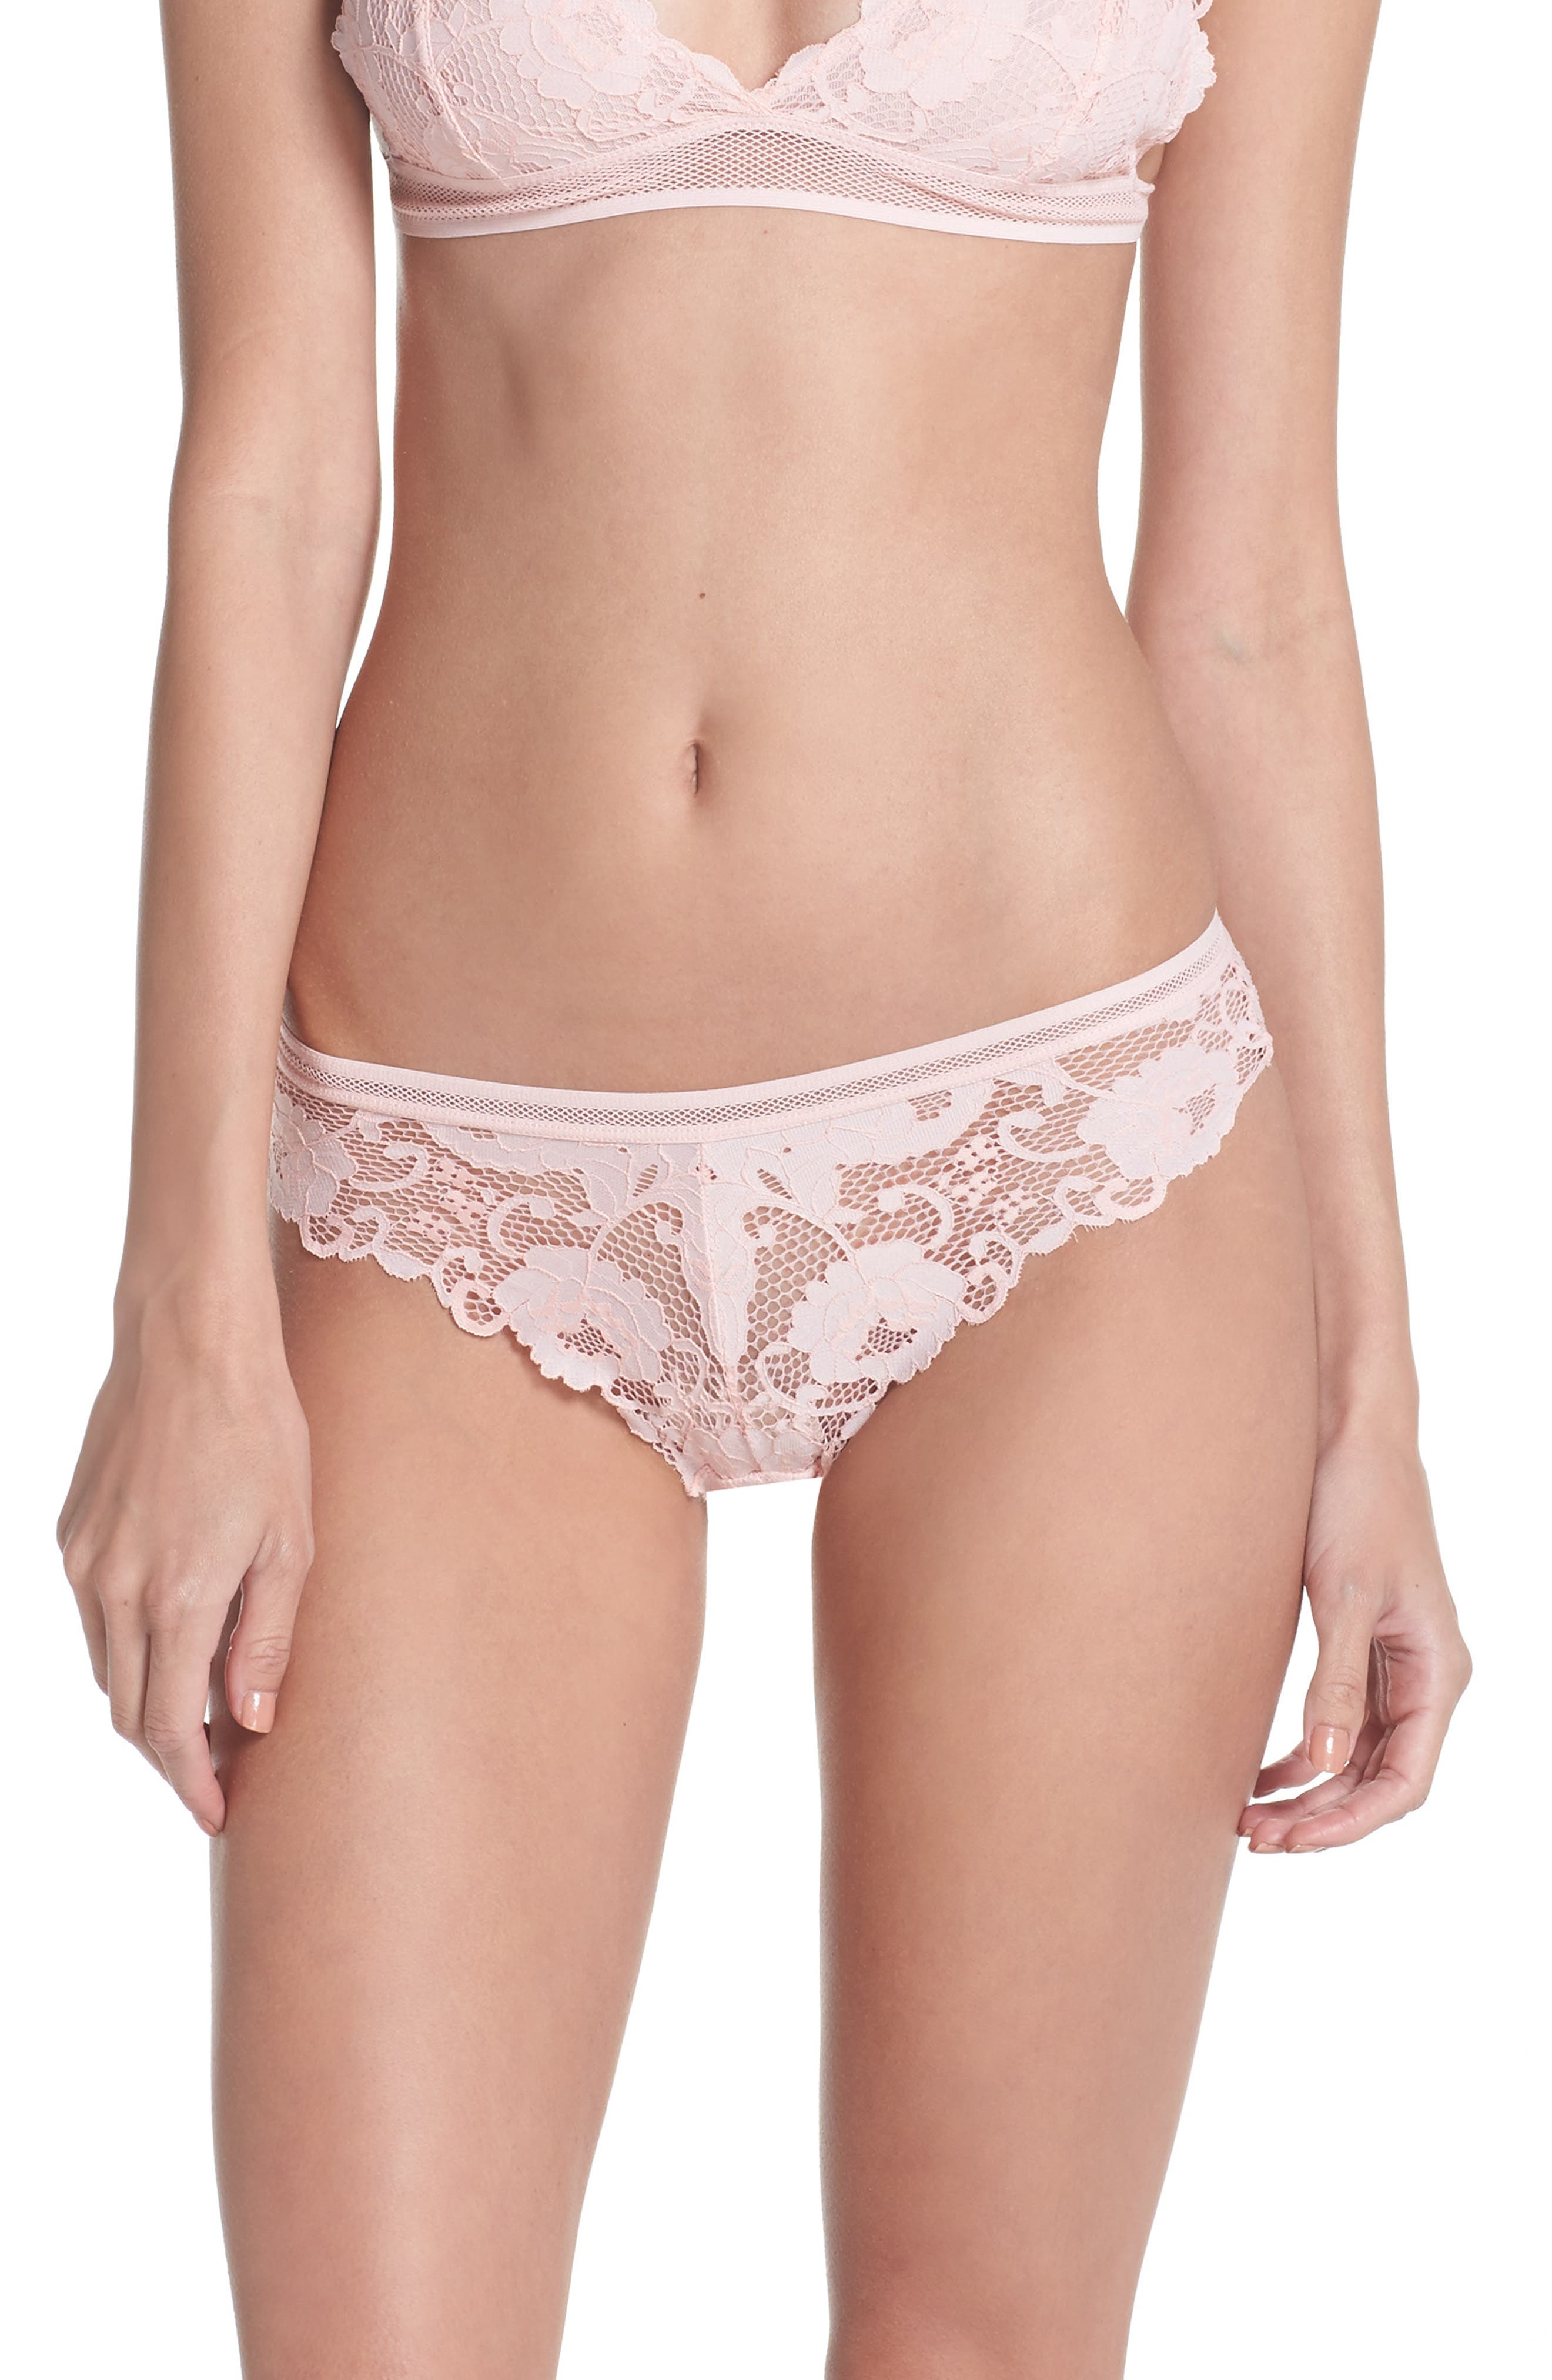 Main Image - Sam Edelman Lace Thong (3 for $33)